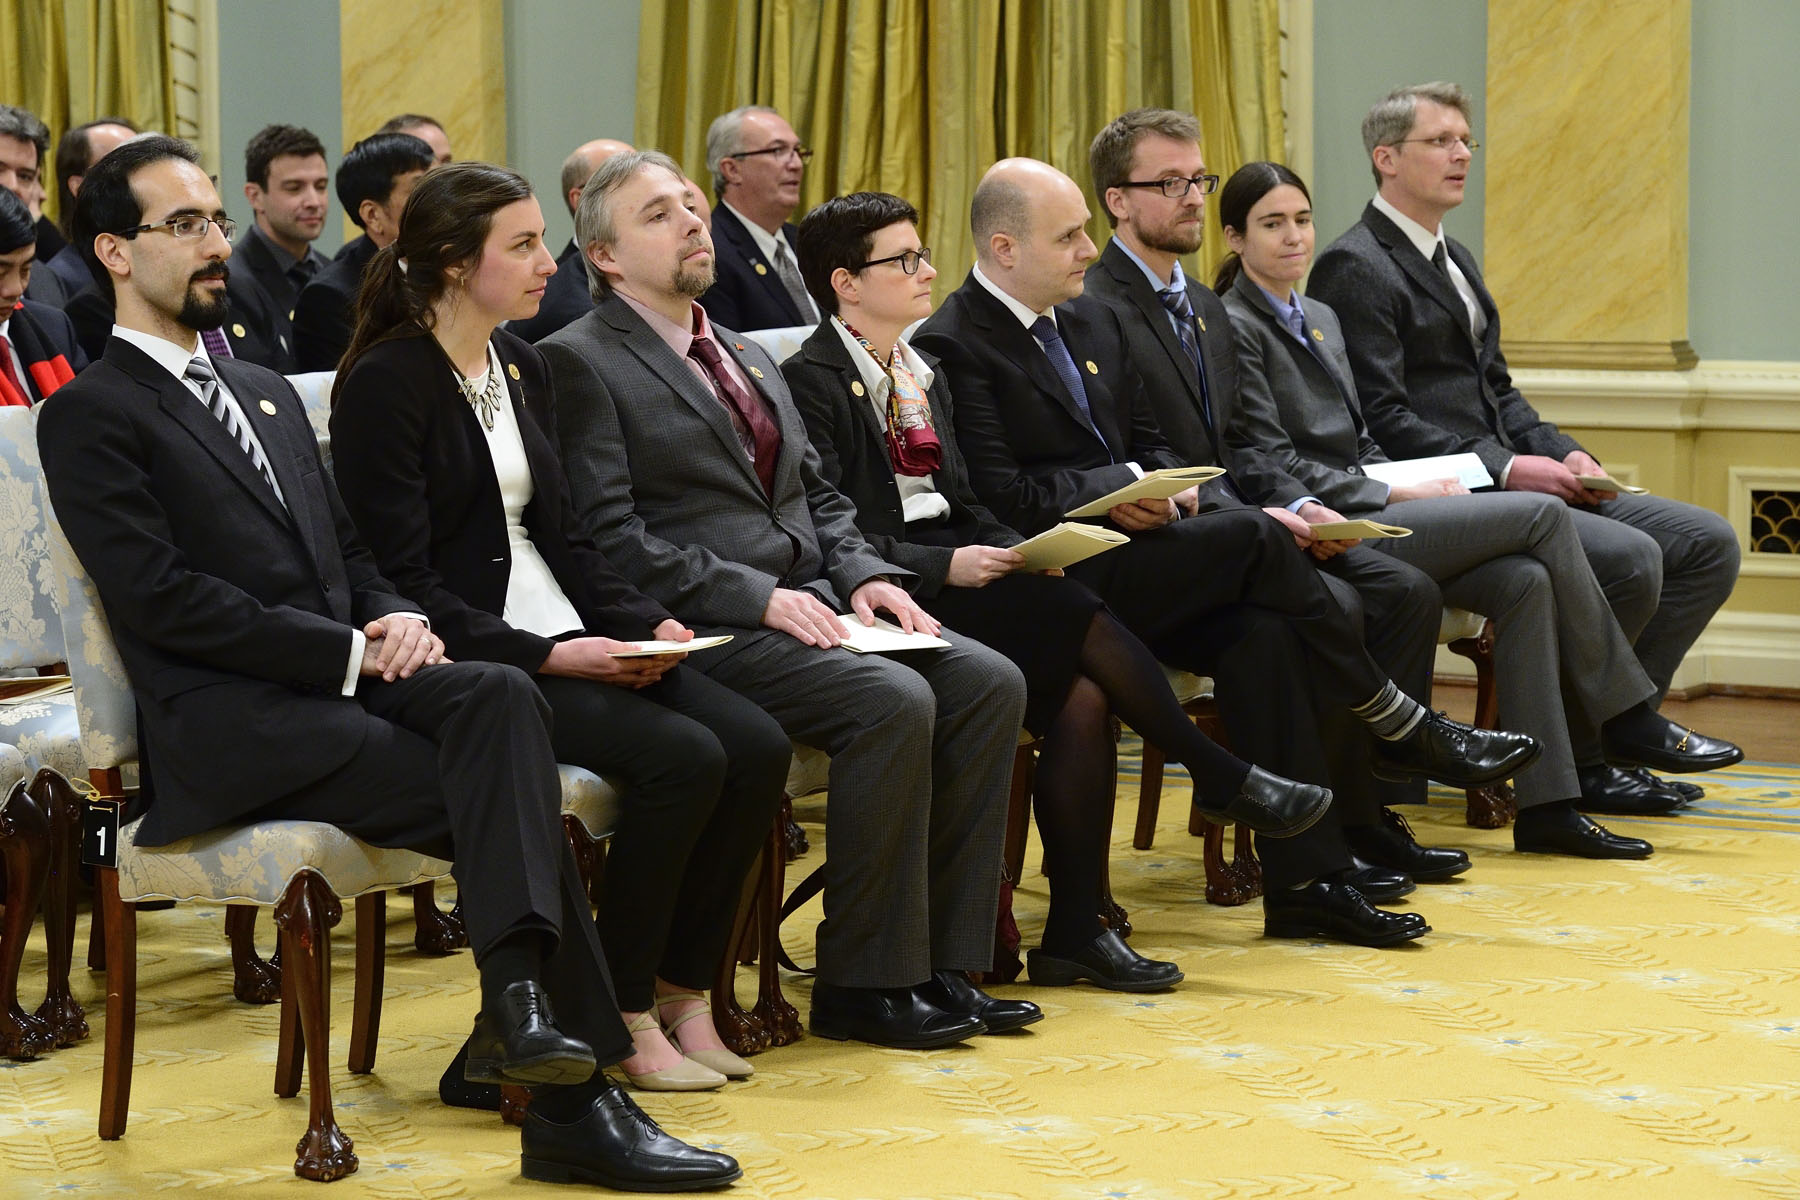 The Governor General presented a series of Natural Sciences and Engineering Research Council of Canada (NSERC) Awards during a ceremony at Rideau Hall.